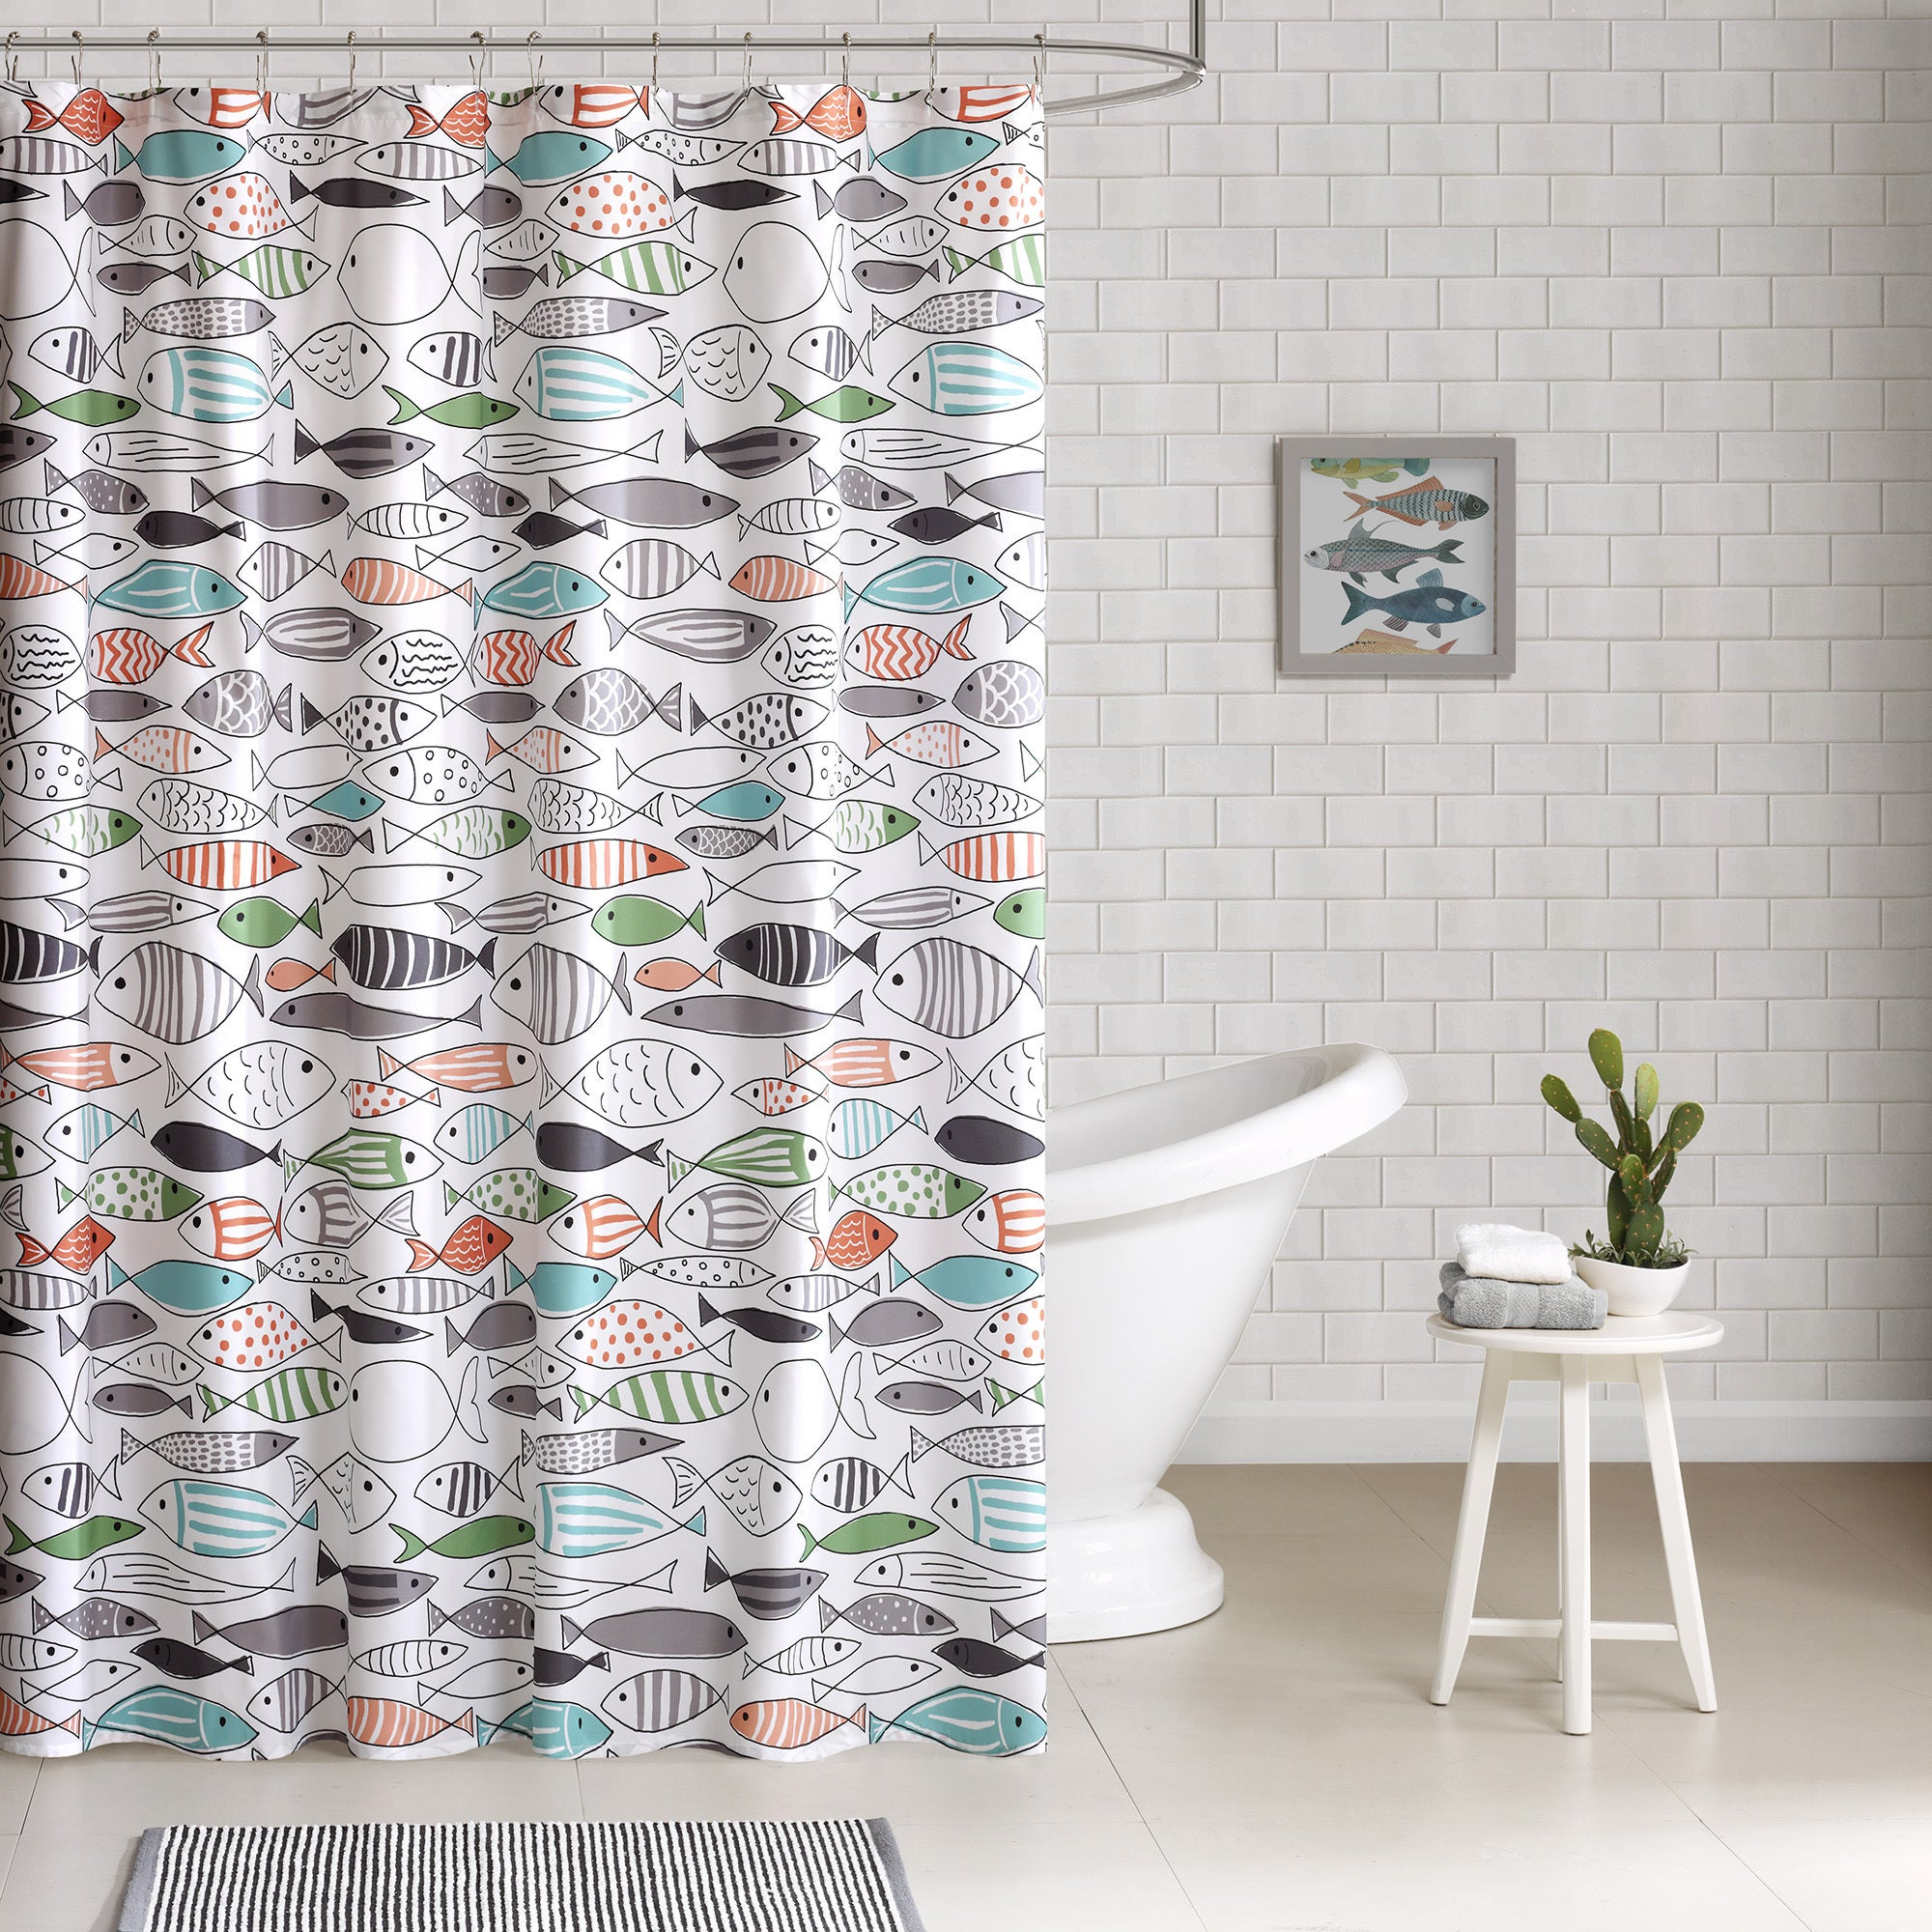 dp home kitchen curtain amazon shower curtains com pique hookless fabric spa built peva with white liner dobby in